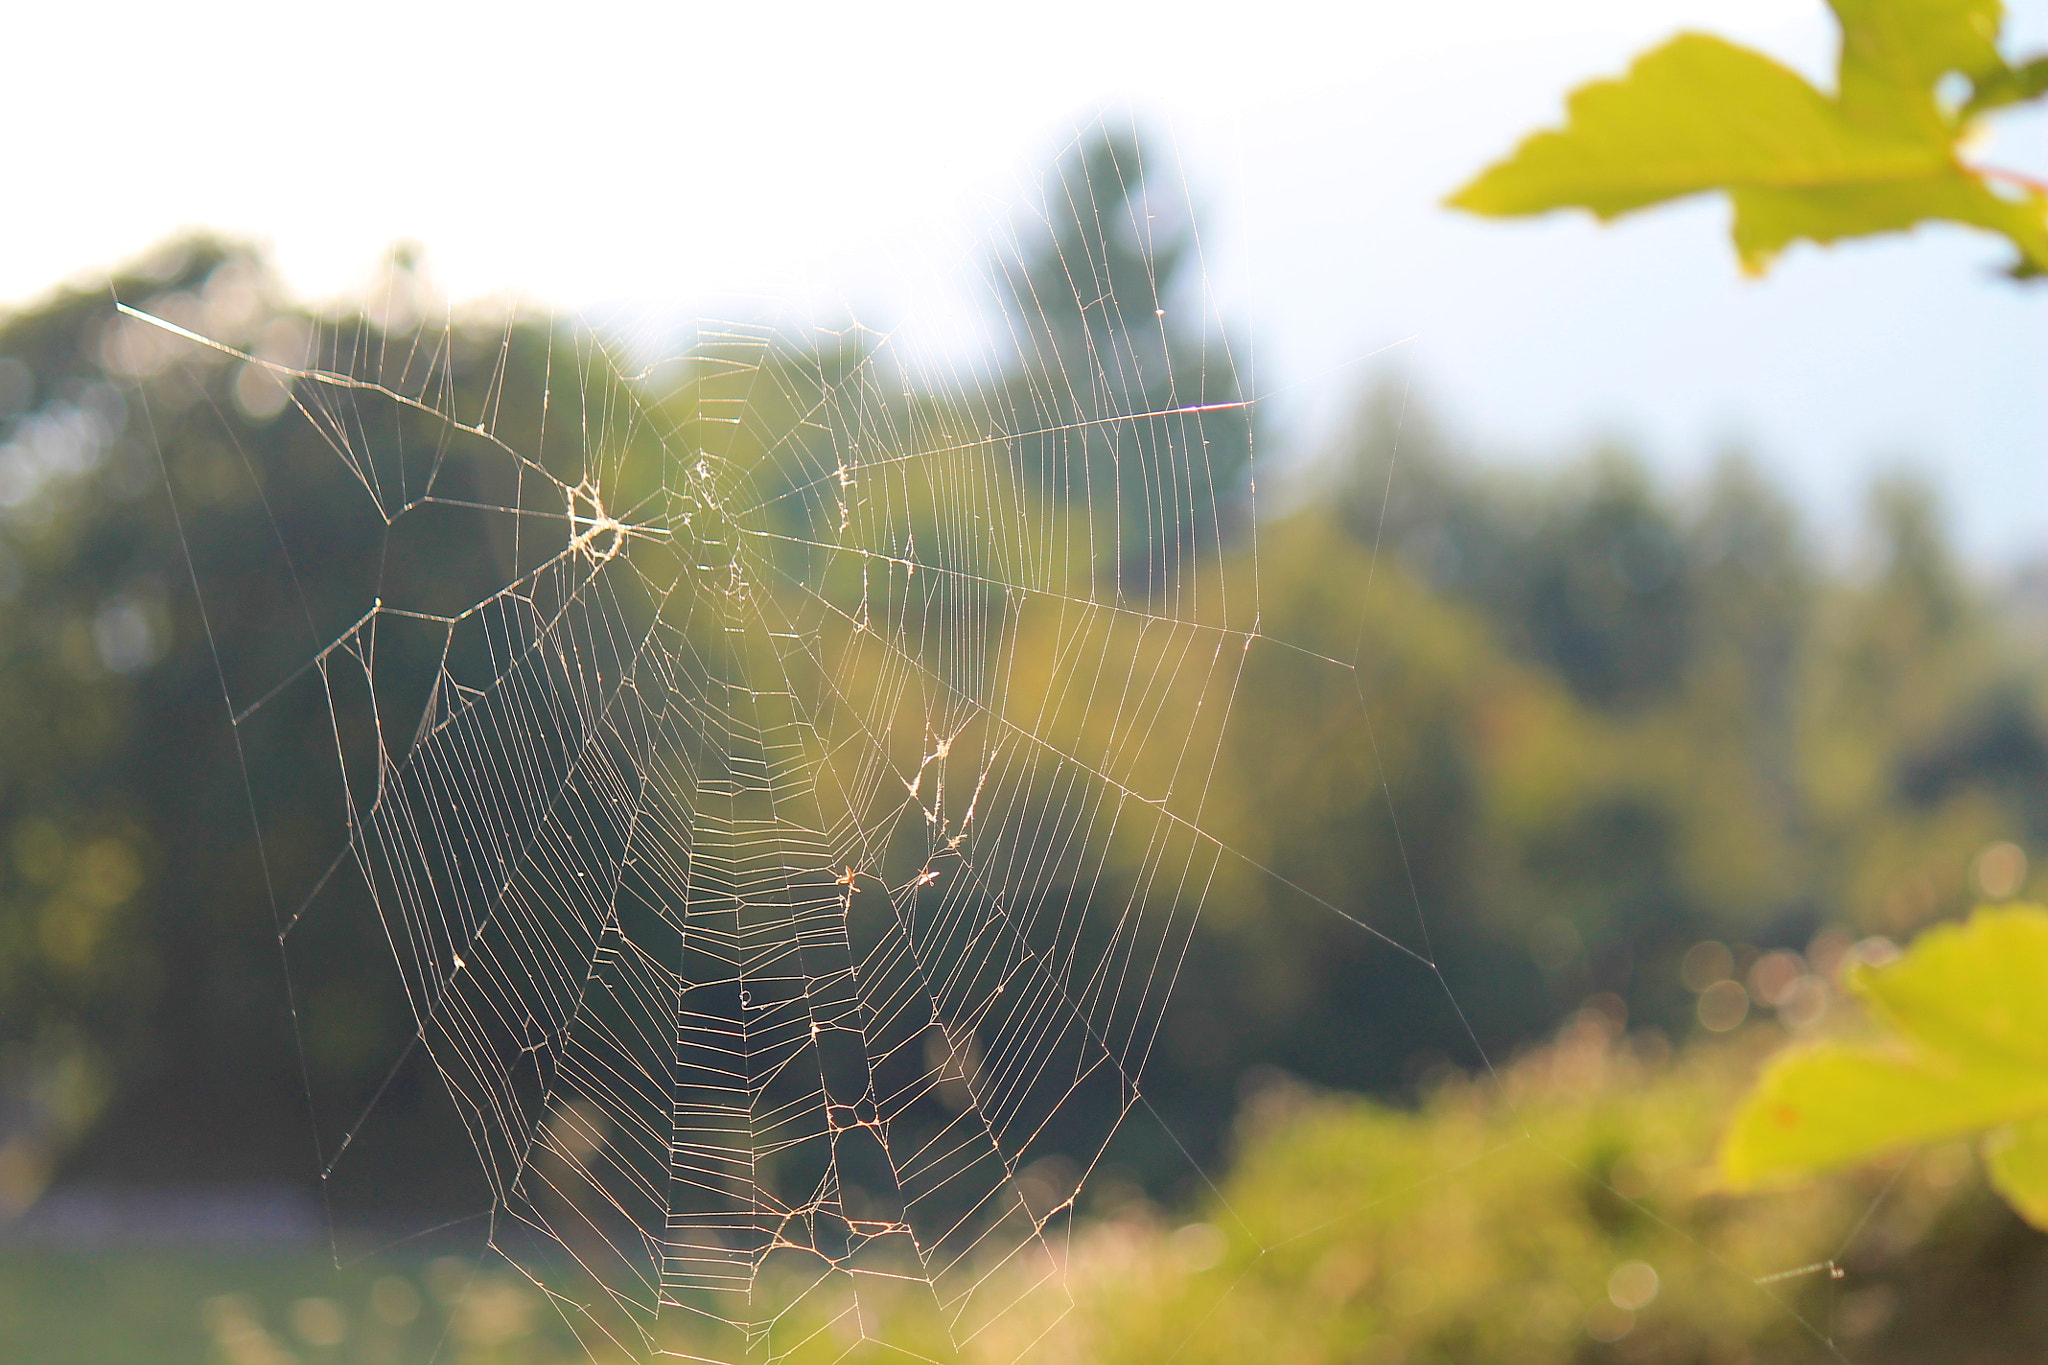 Photograph Spider web by Alessandro Faggioli on 500px